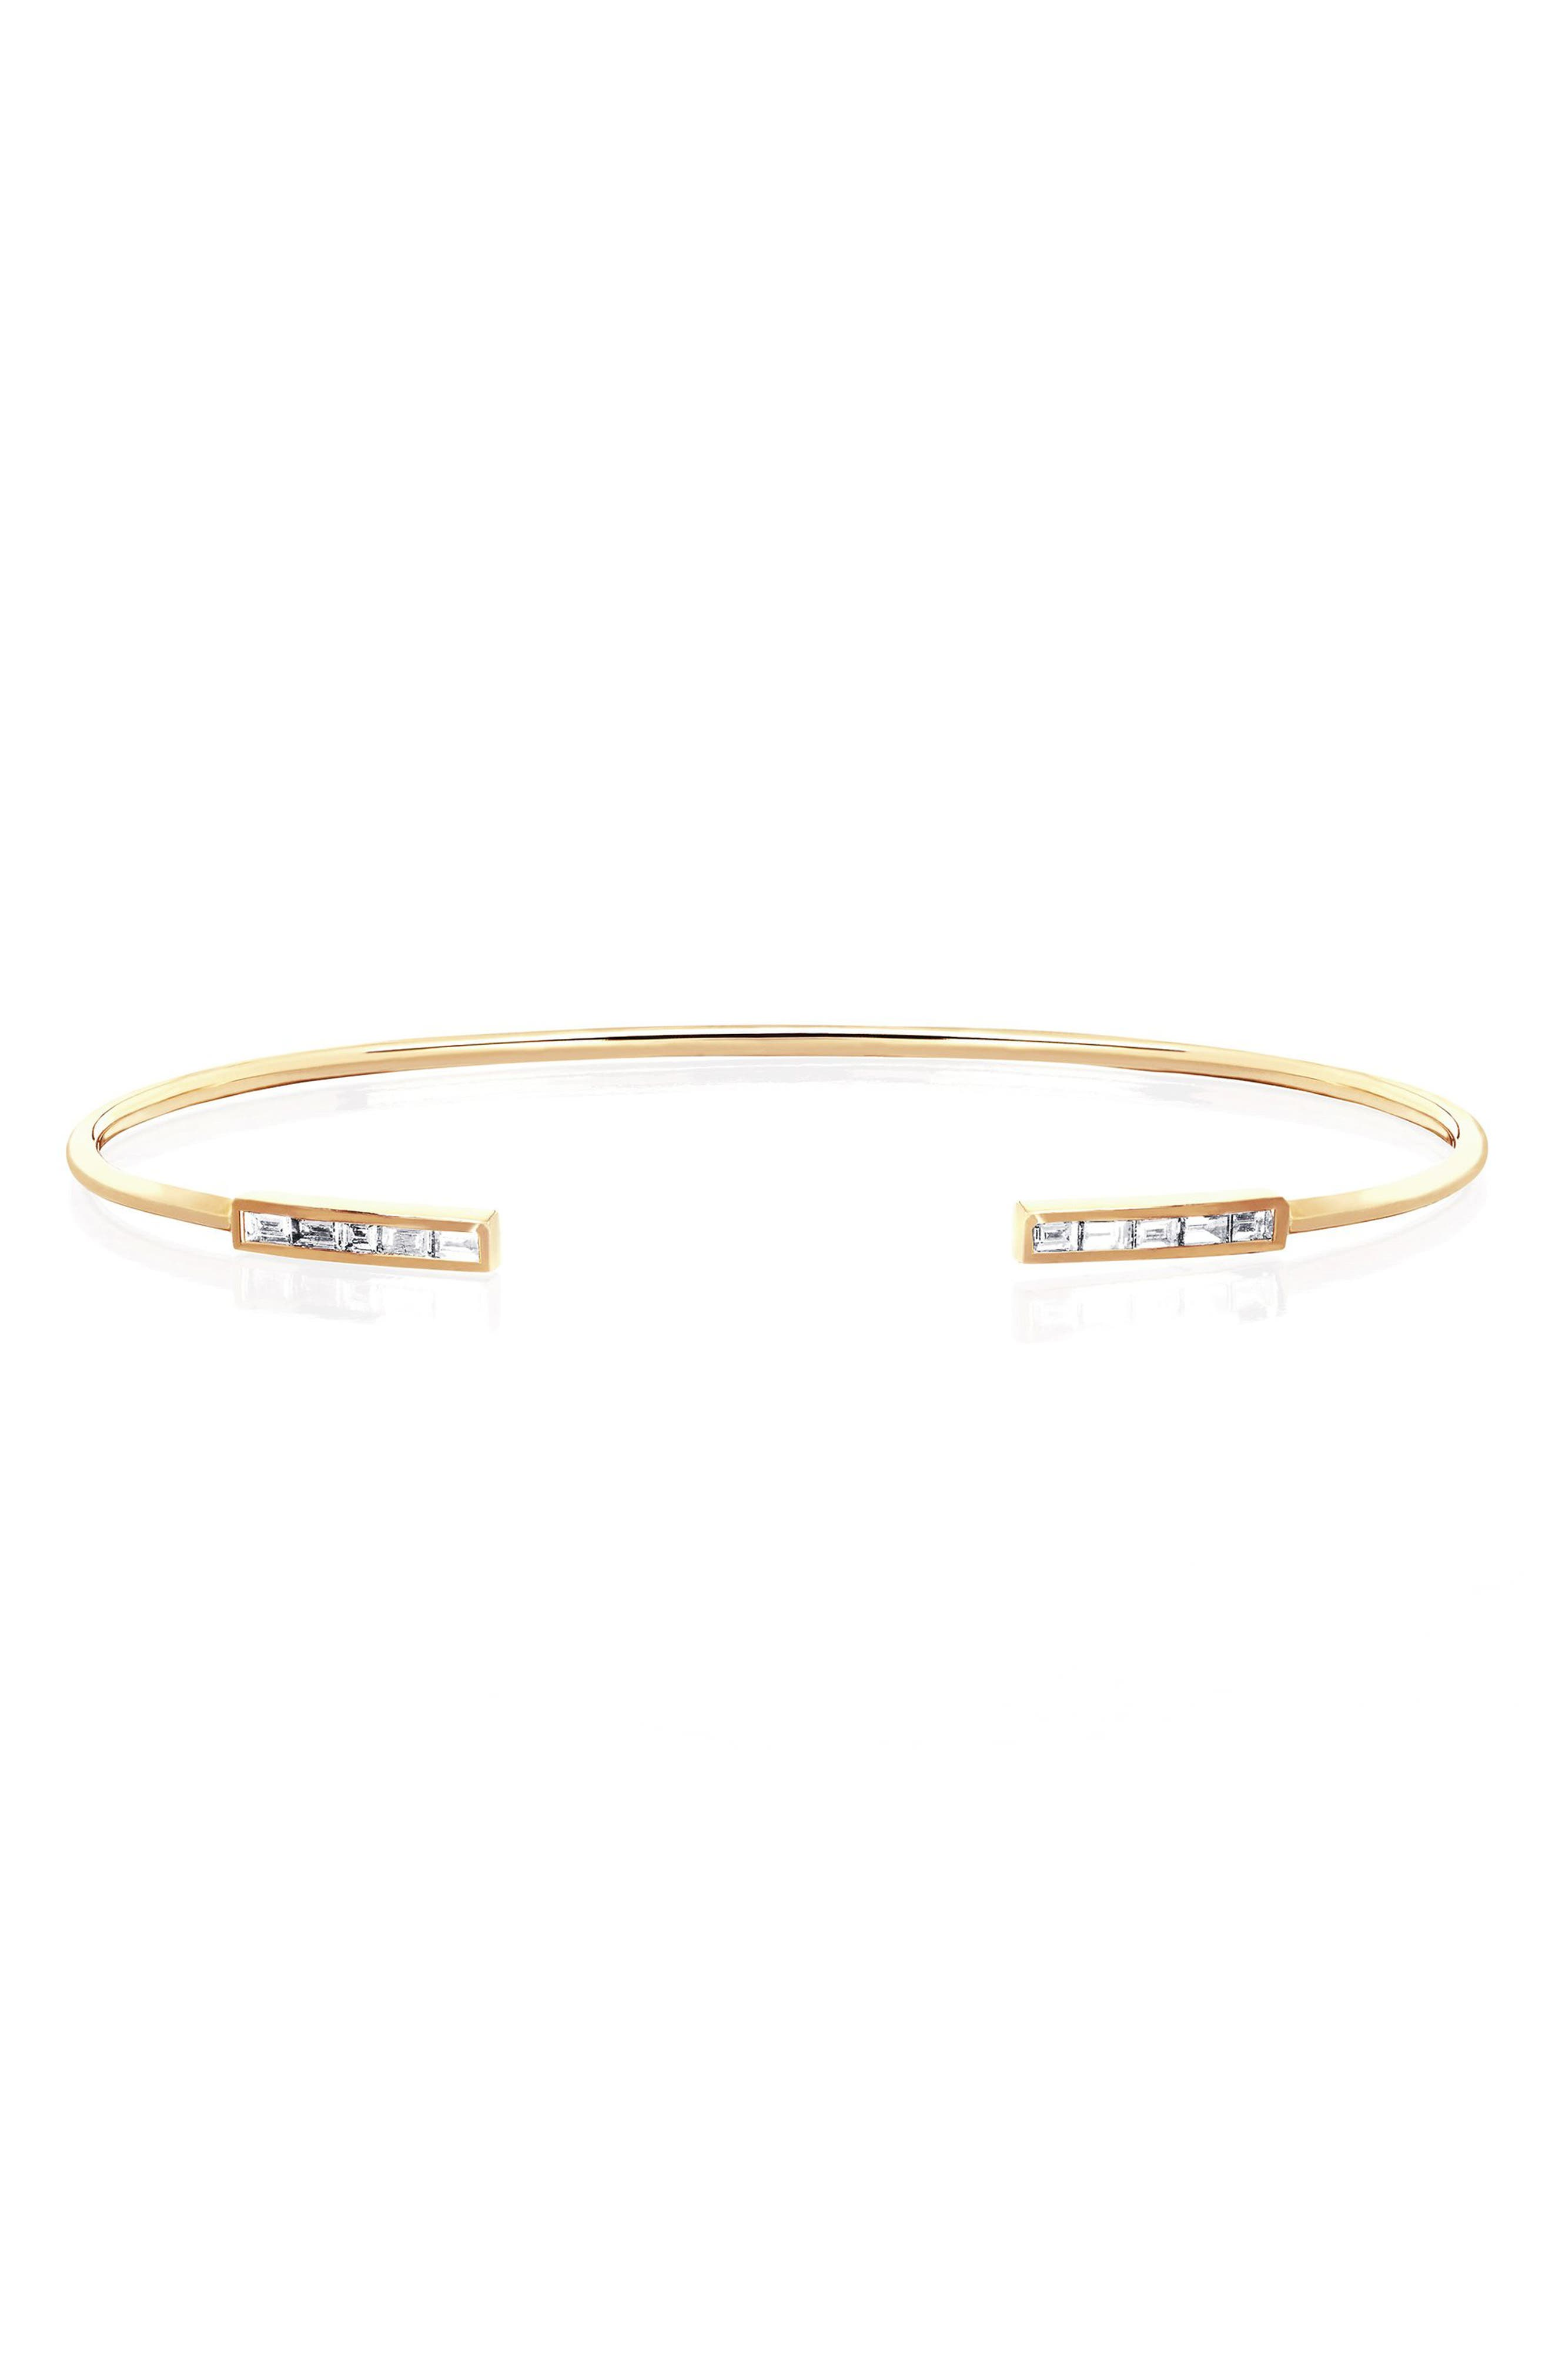 Baguette Diamond Cuff,                             Main thumbnail 1, color,                             YELLOW GOLD